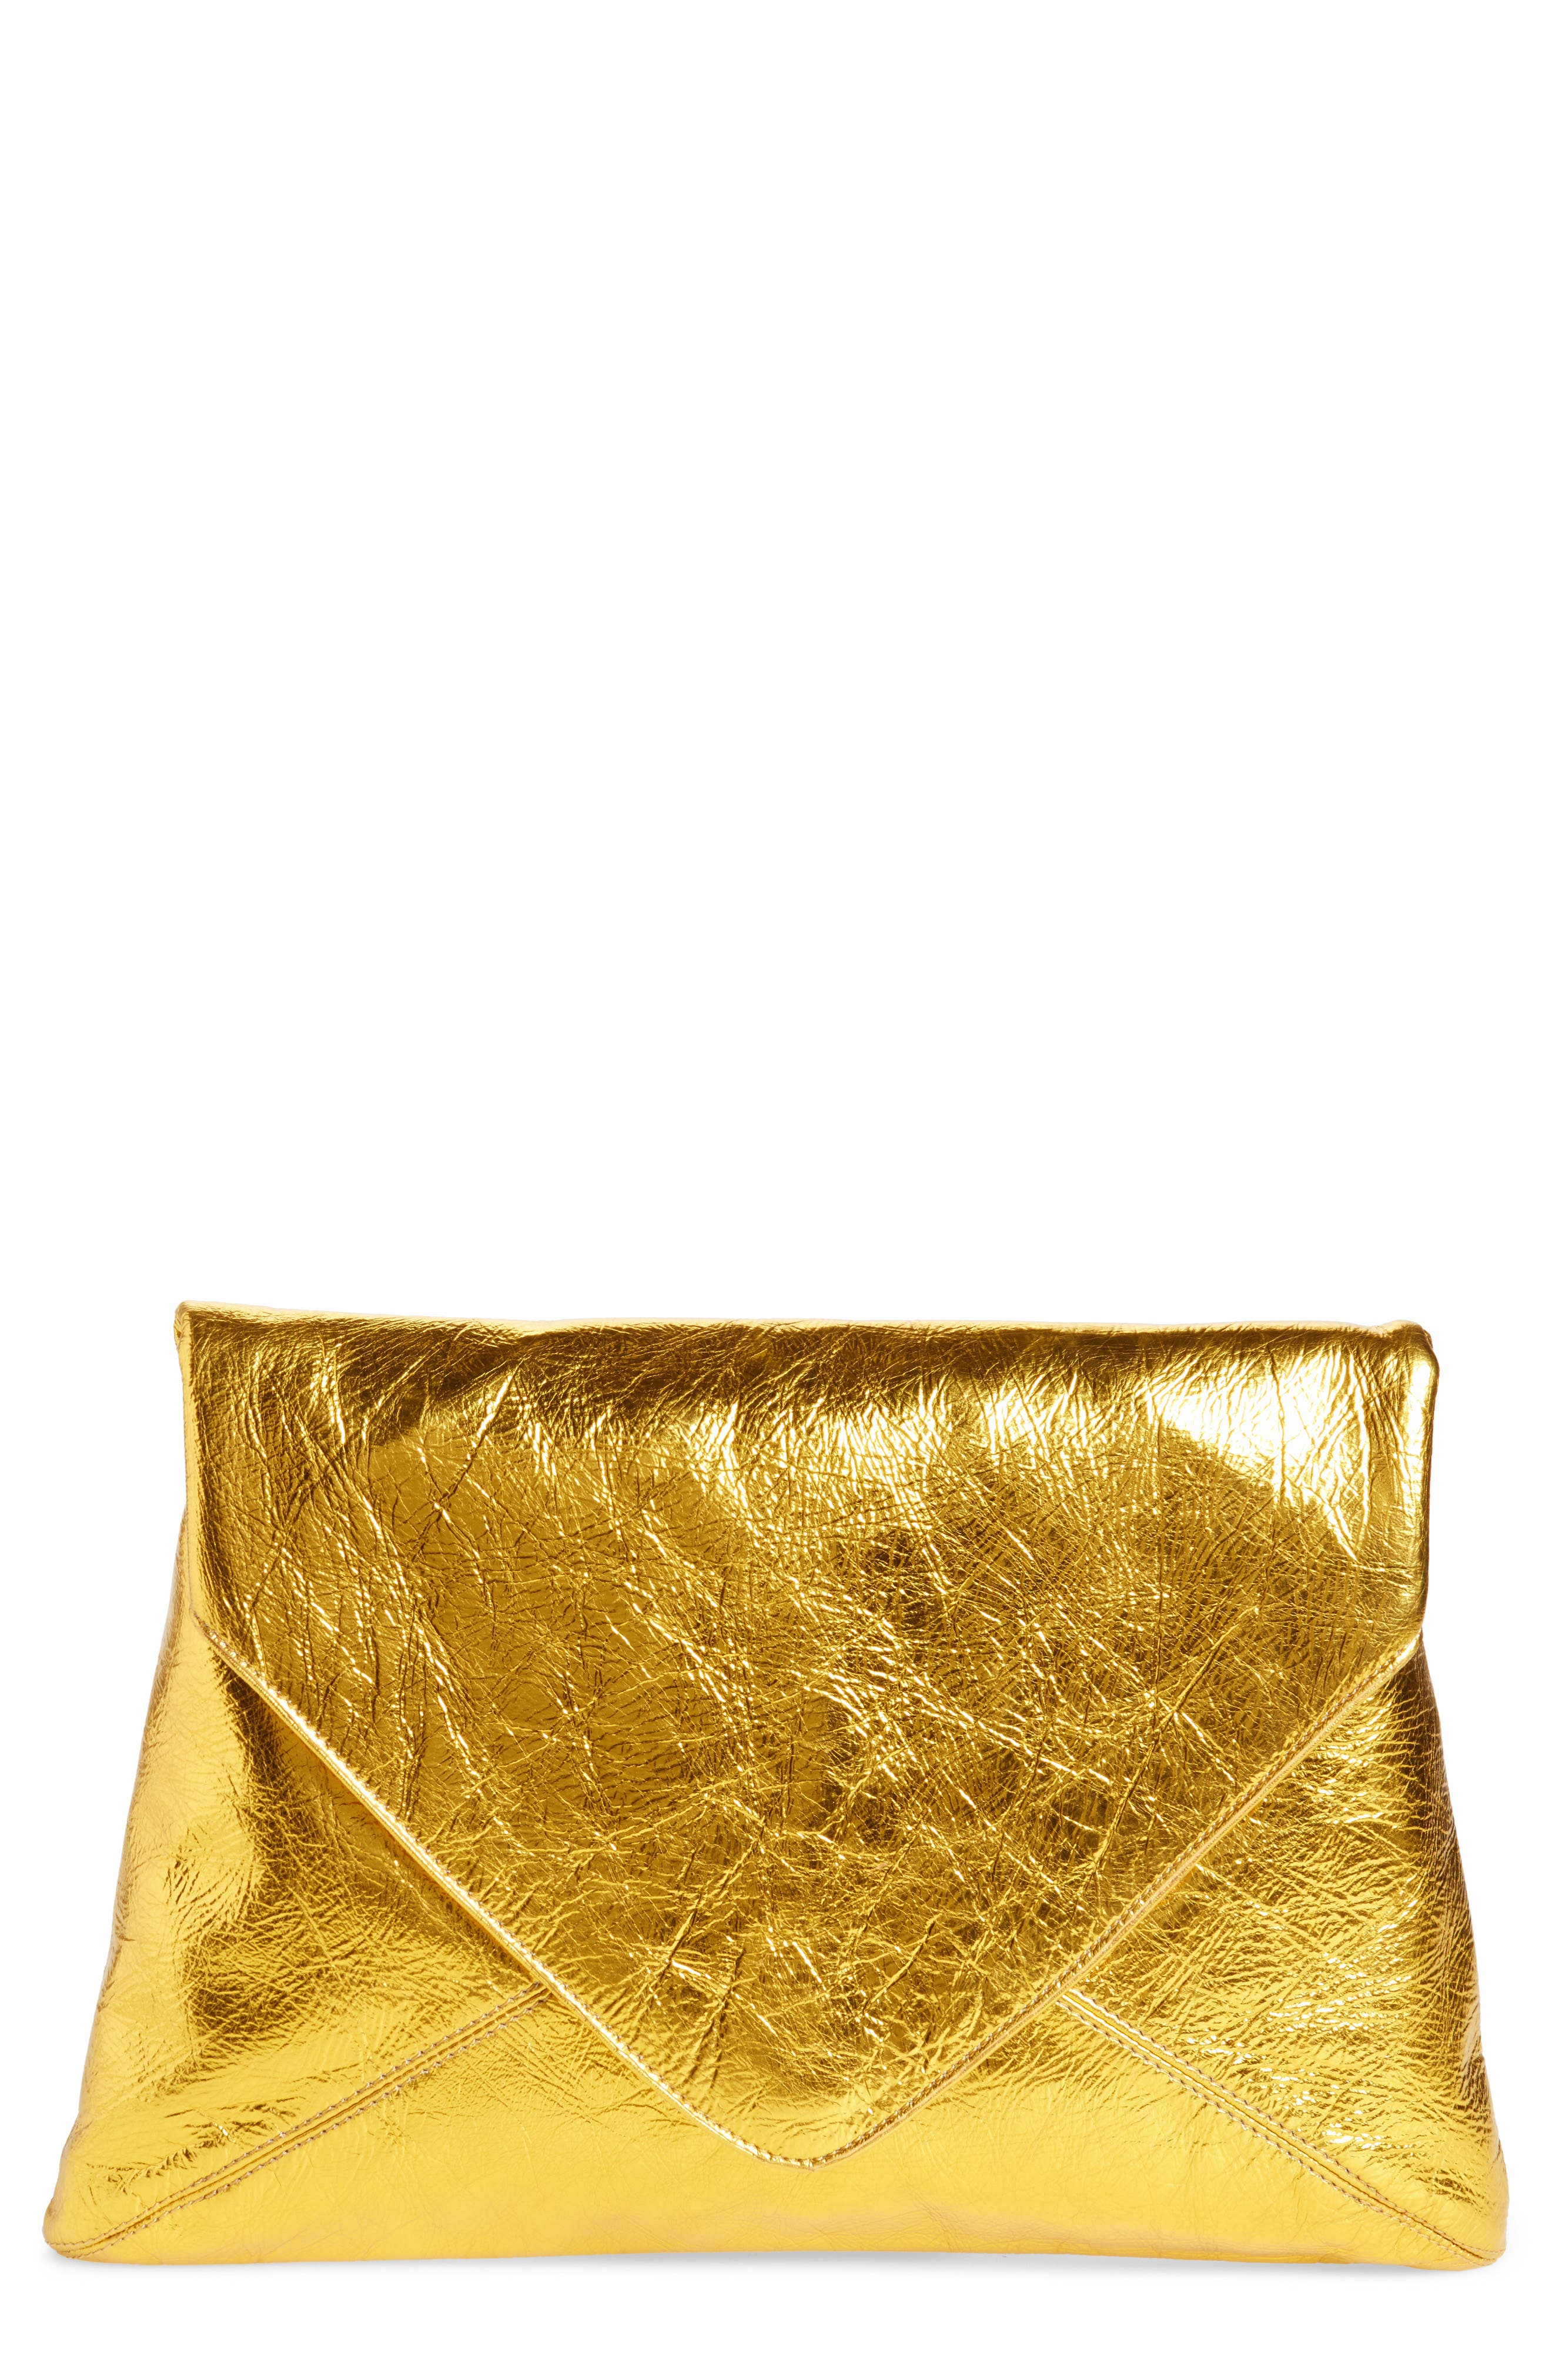 Metallic Leather Envelope Clutch,                         Main,                         color, Gold